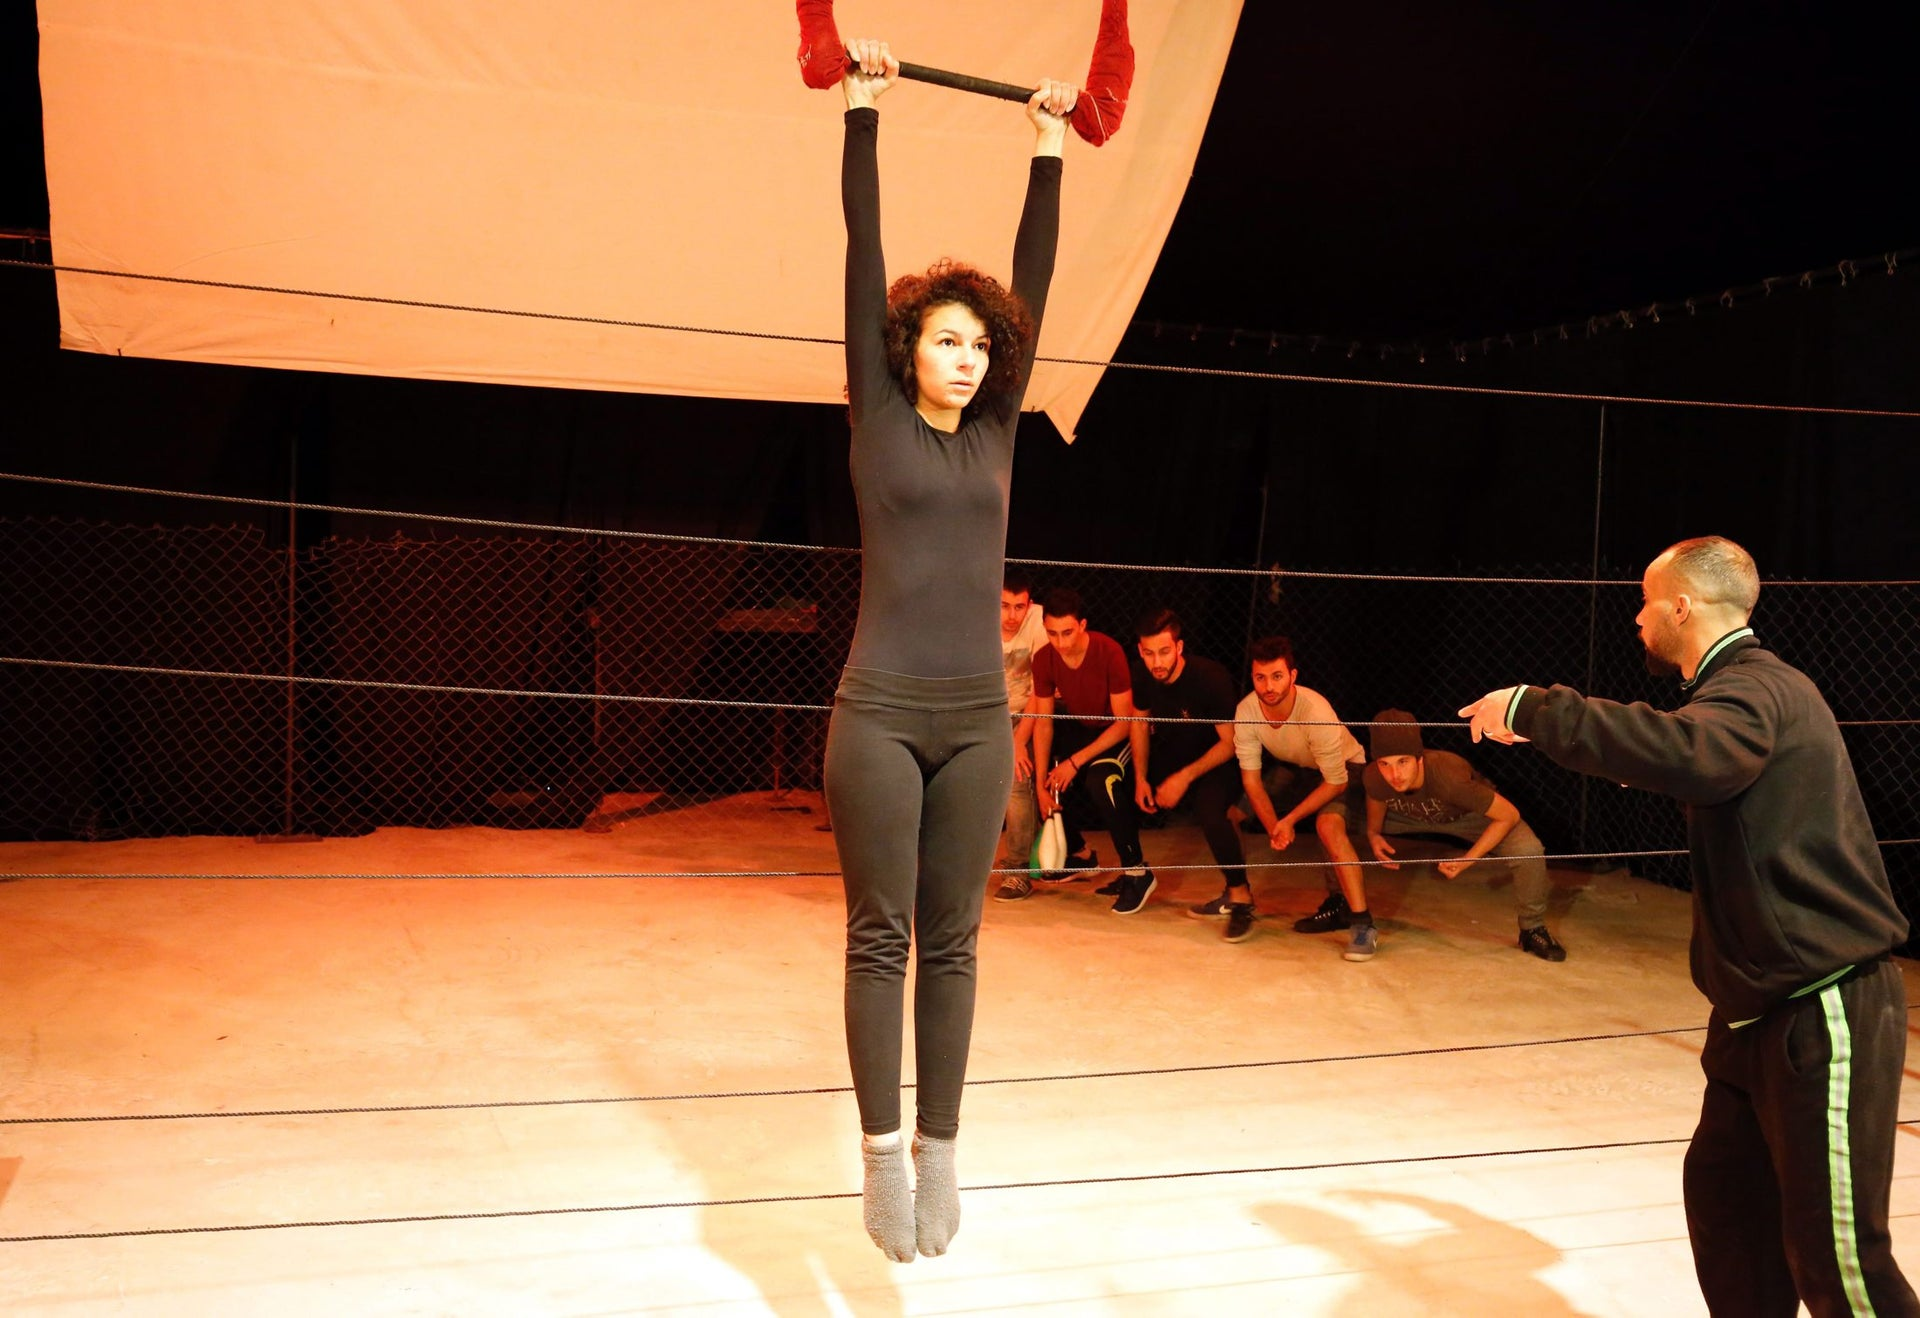 Palestinians train at the Palestinian Circus School in the village of Bir Zeit, near Ramallah on March 21, 2016.